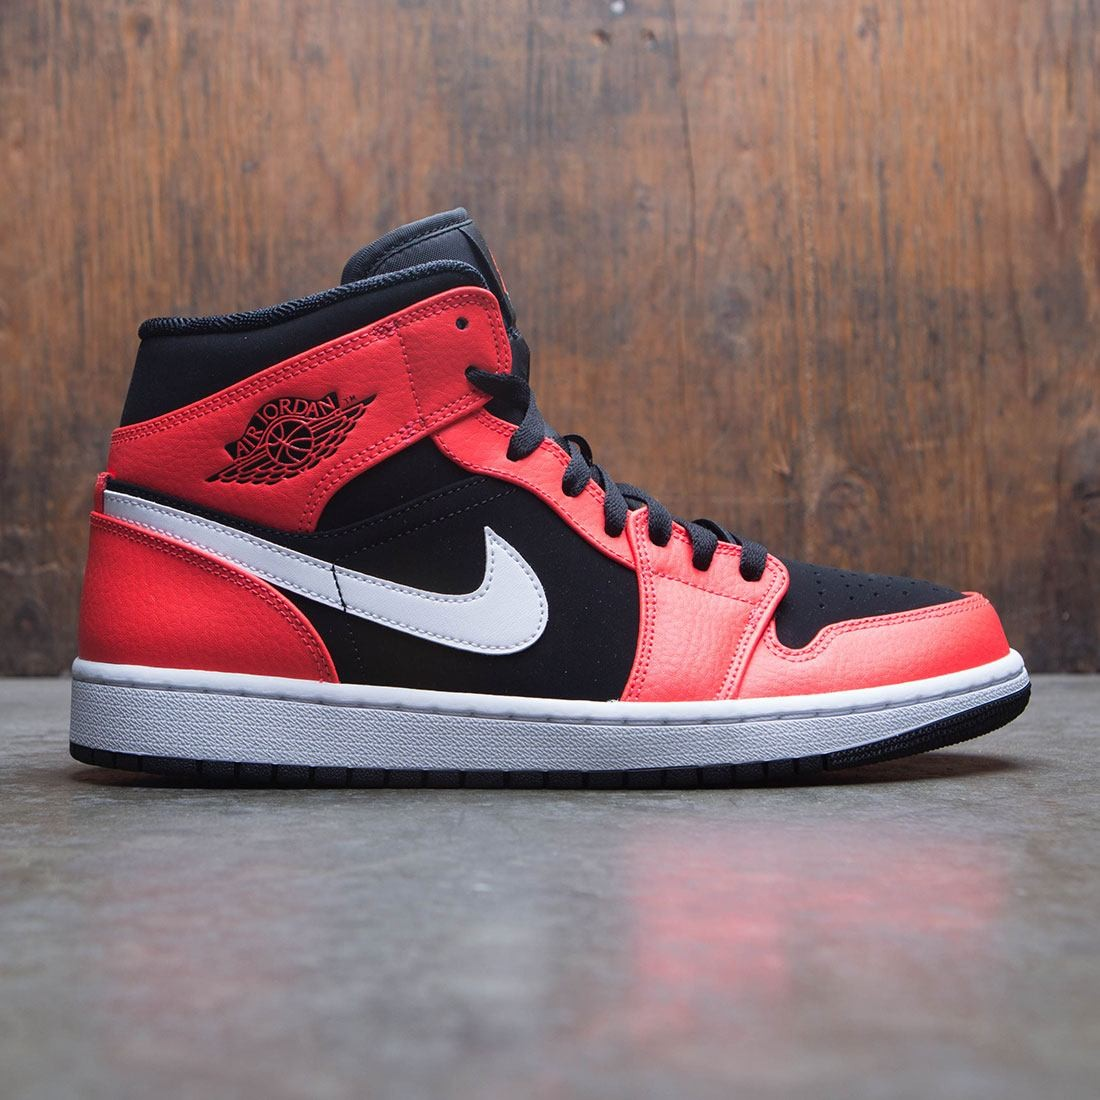 the latest 1acf1 f6651 jordan men air jordan 1 mid black infrared 23 white